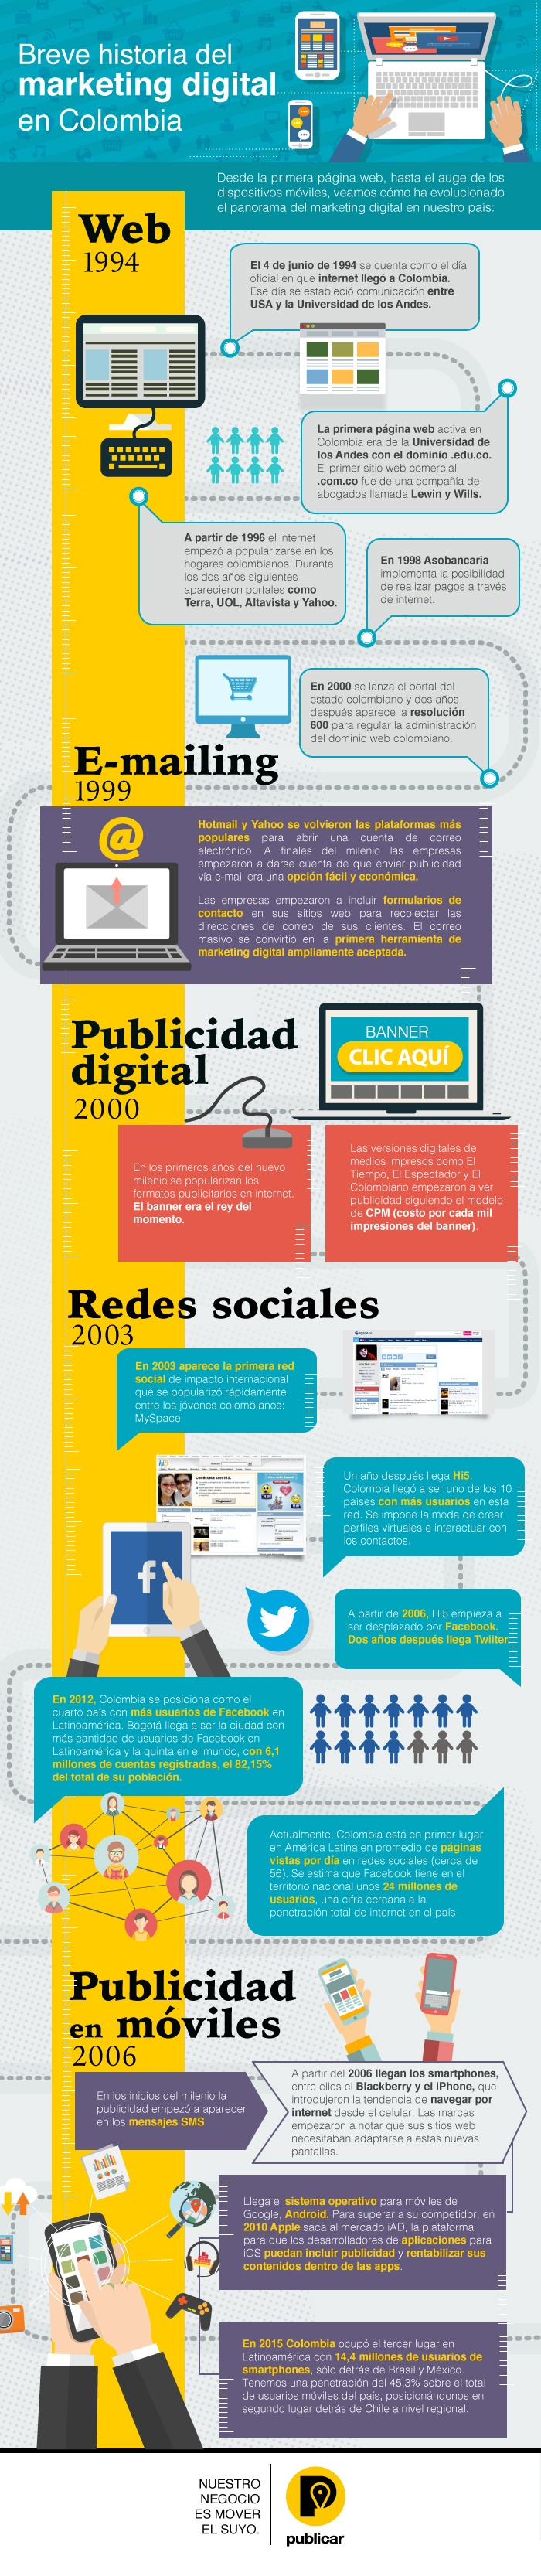 Historia del Marketing Digital en Colombia